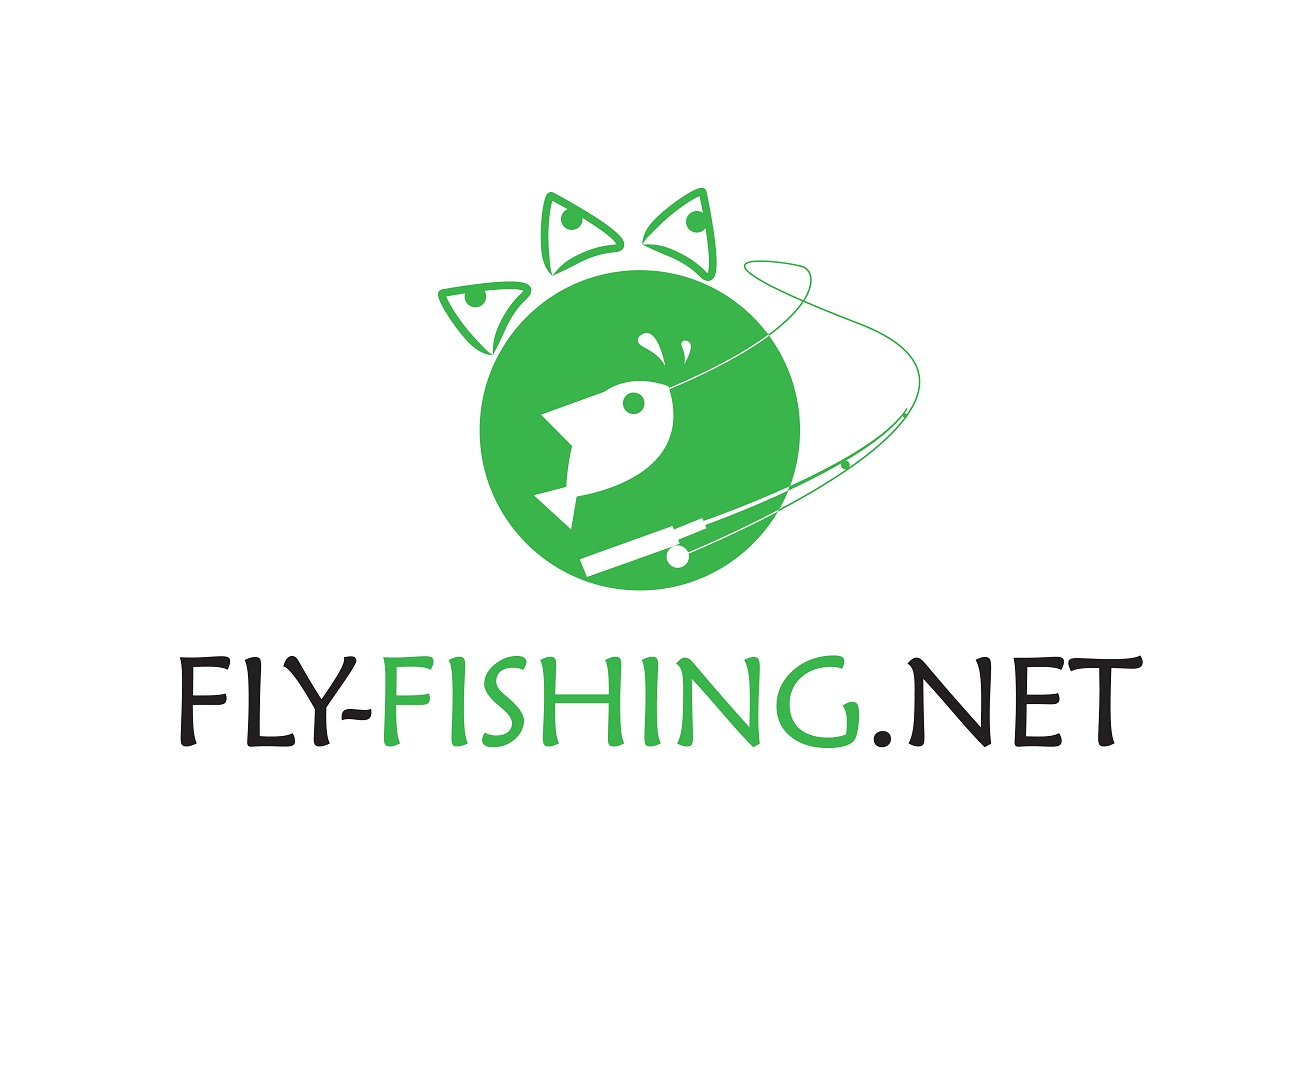 Logo Design by jhunzkie24 - Entry No. 71 in the Logo Design Contest Artistic Logo Design for fly-fishing.net.